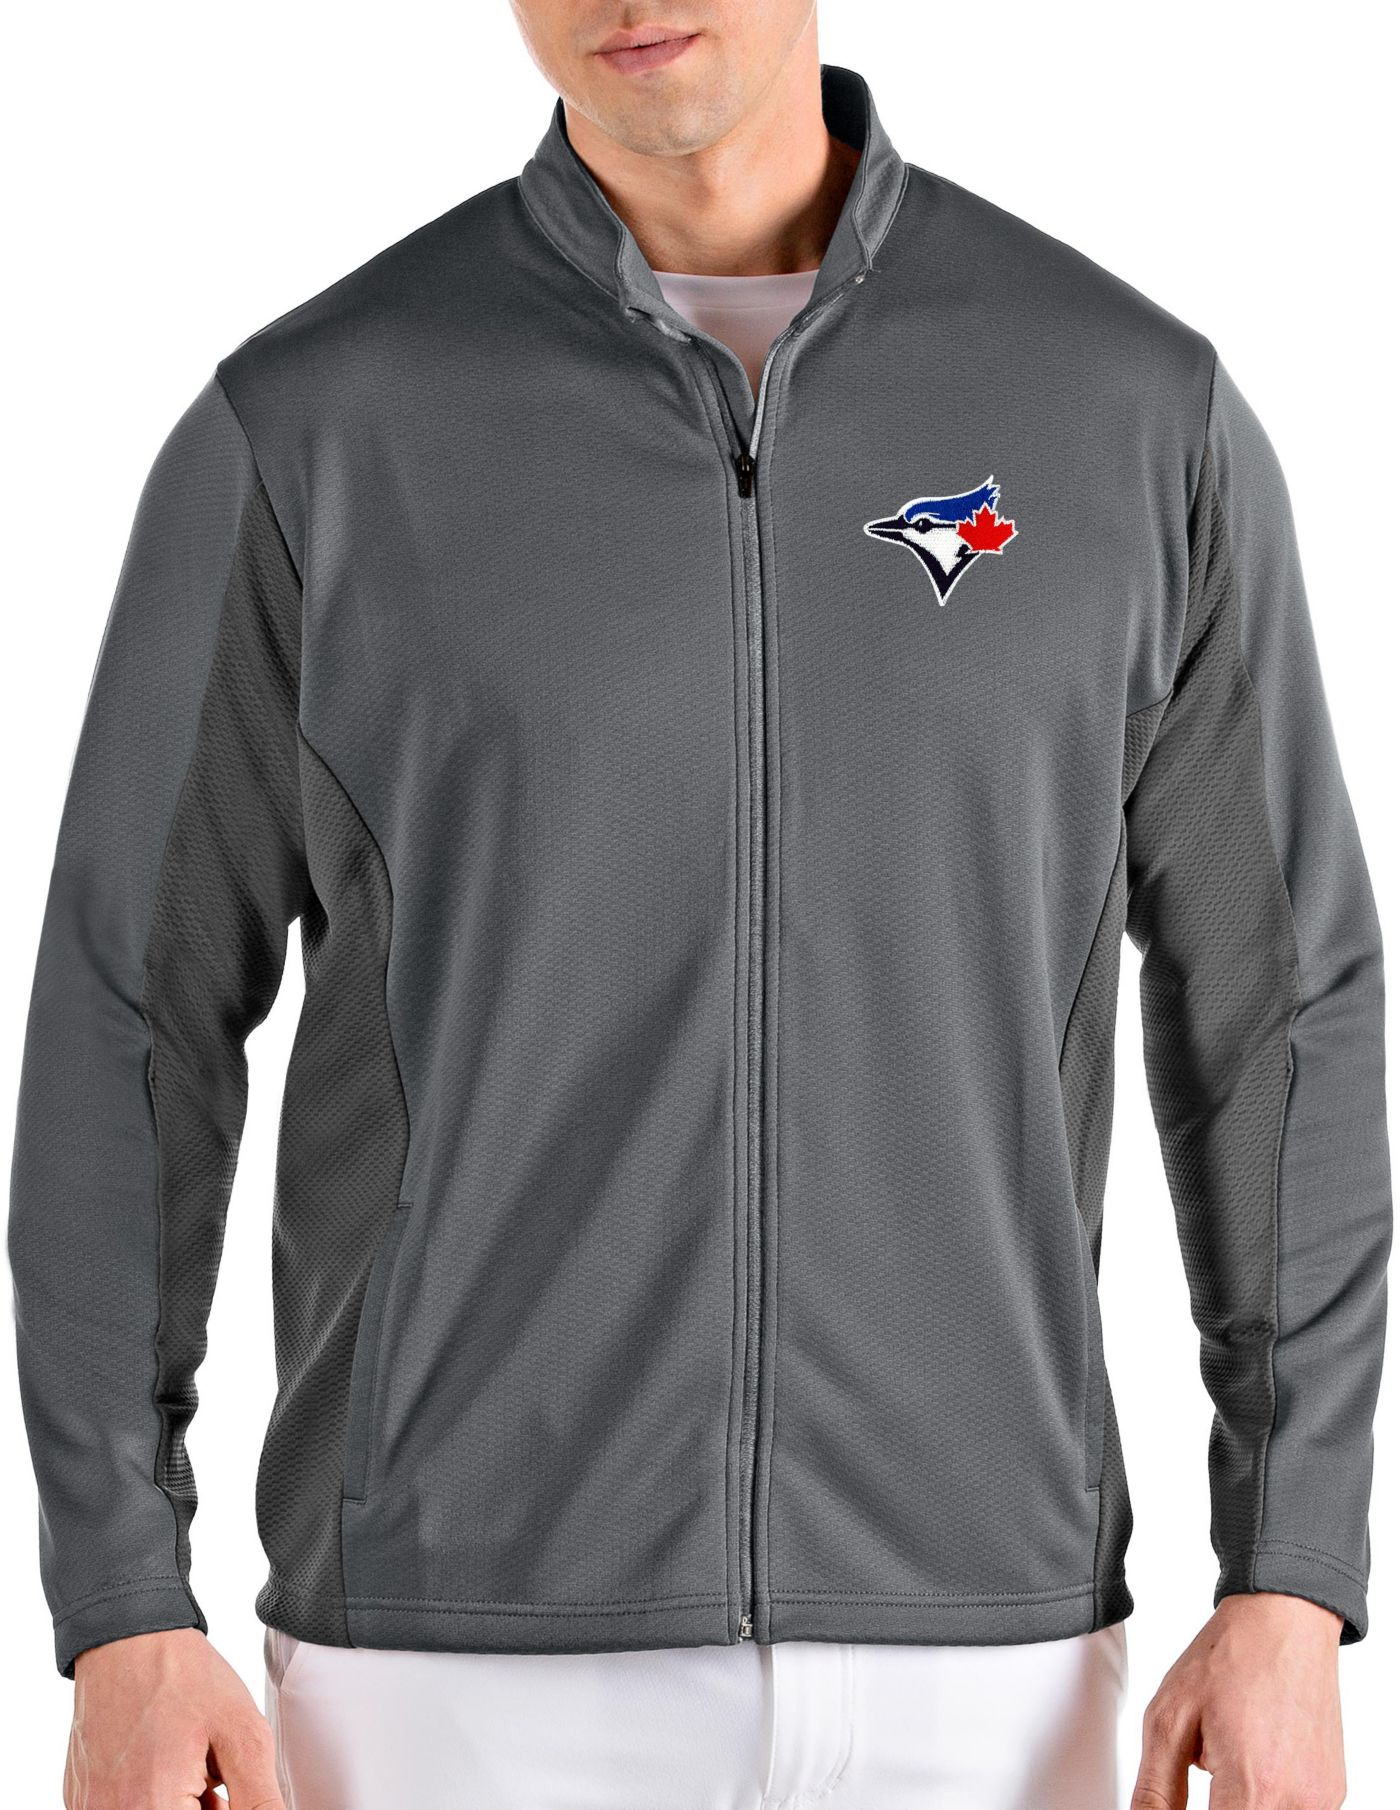 Antigua Men's Toronto Bluejays Grey Passage Full-Zip Jacket